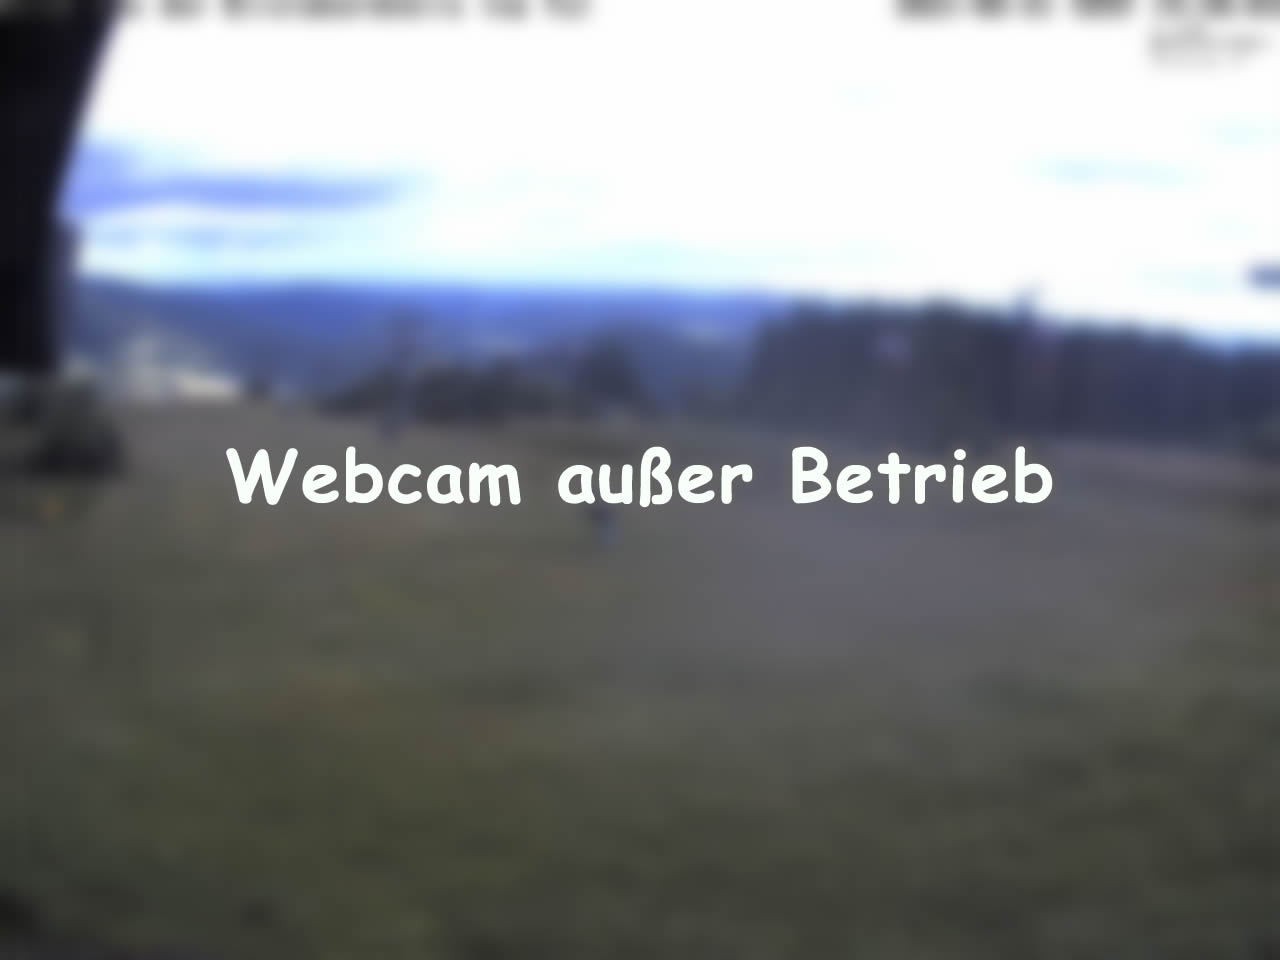 Ettelsberg Seilbahn Willingen Webcam